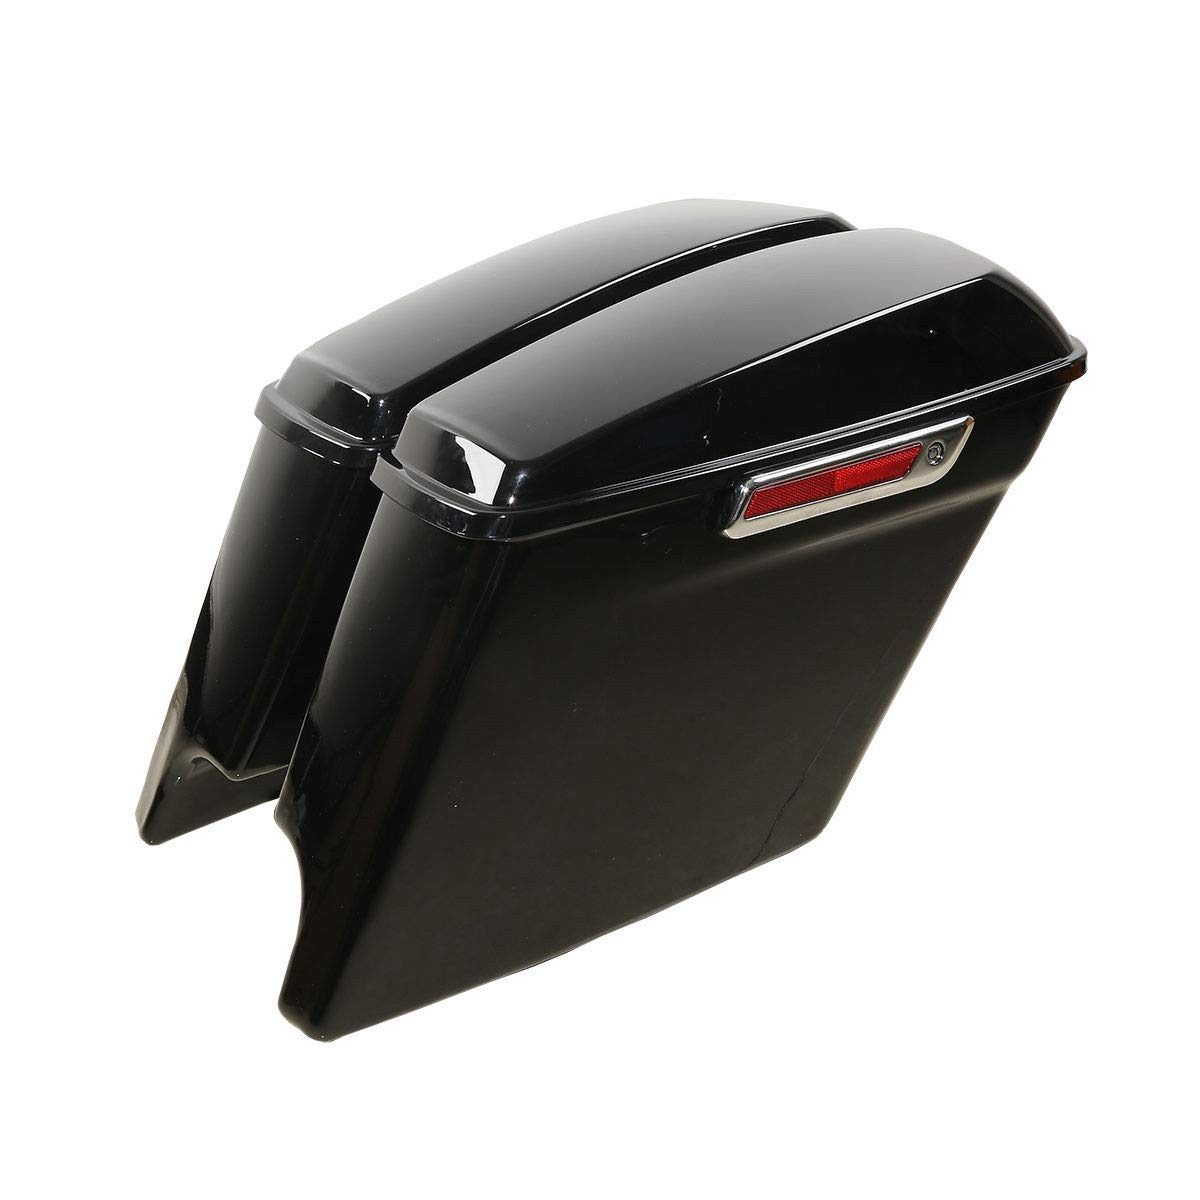 TCMT 5'' Stretched Extended Saddlebags W/Latch Key Fits For Harley Touring 2014-2019